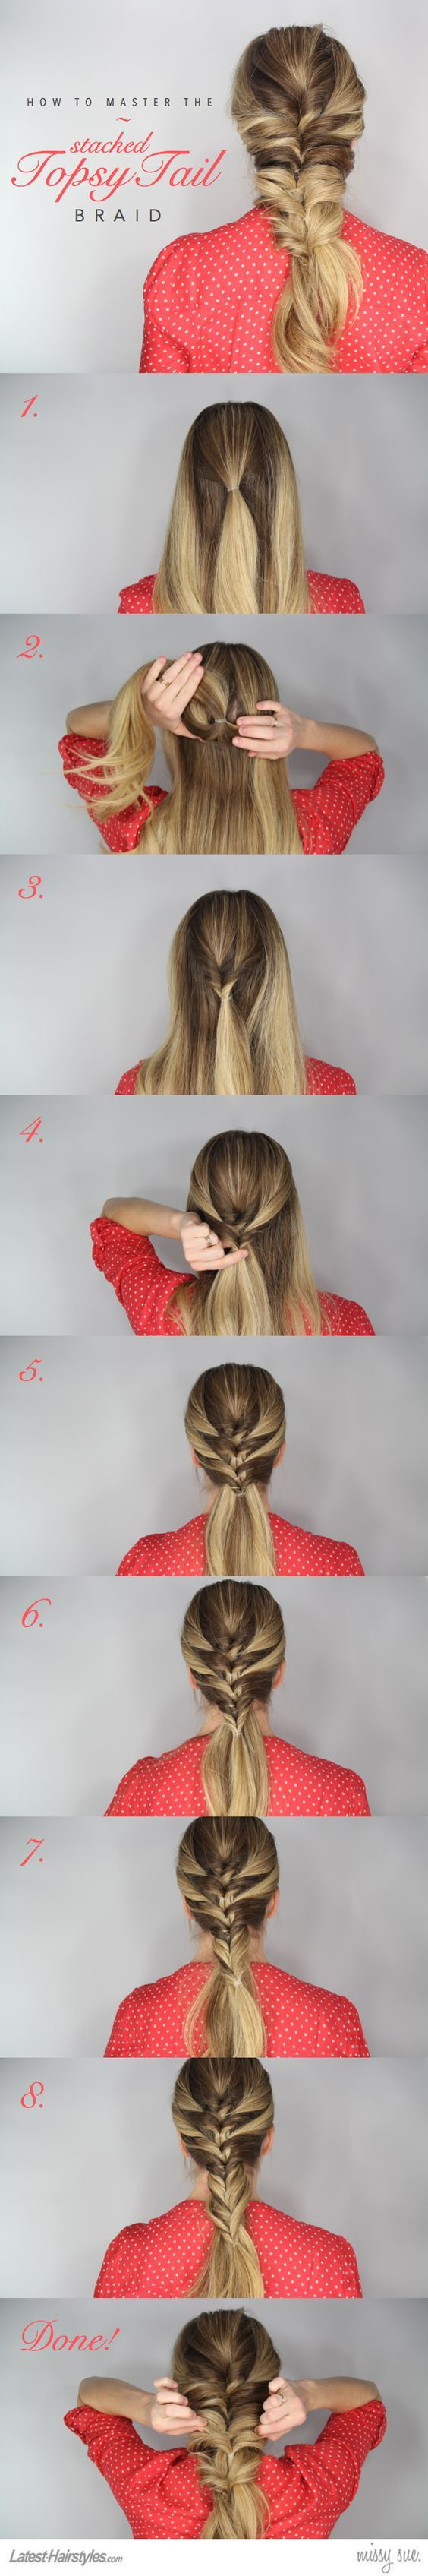 Pretty Braided Crown Hairstyle Tutorials and Ideas / http://www.himisspuff.com/easy-diy-braided-hairstyles-tutorials/38/: